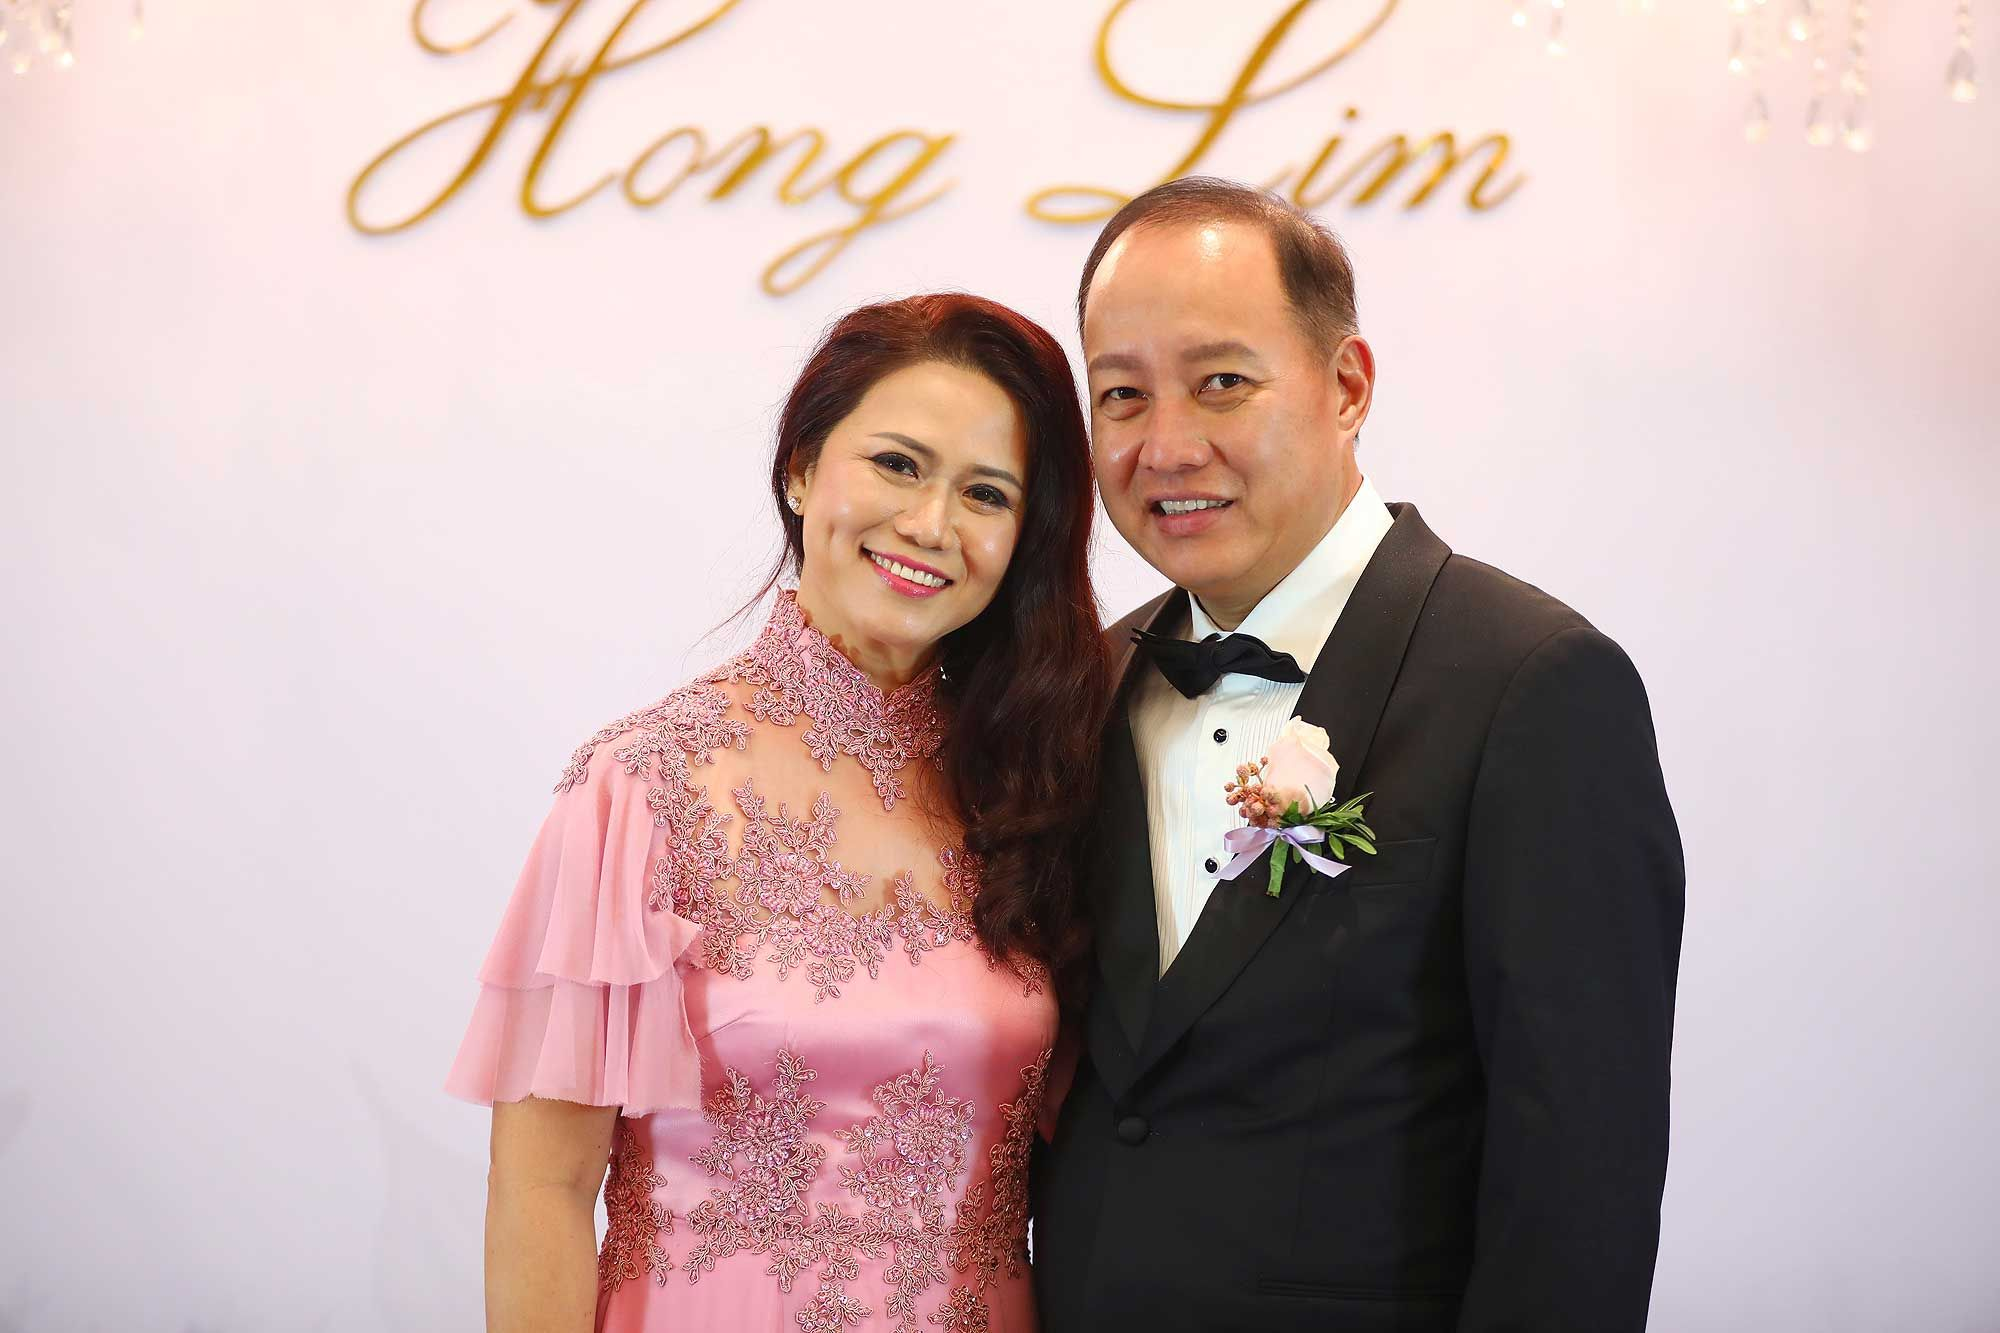 Parents of the groom, Remie Yap and Ricky Tan